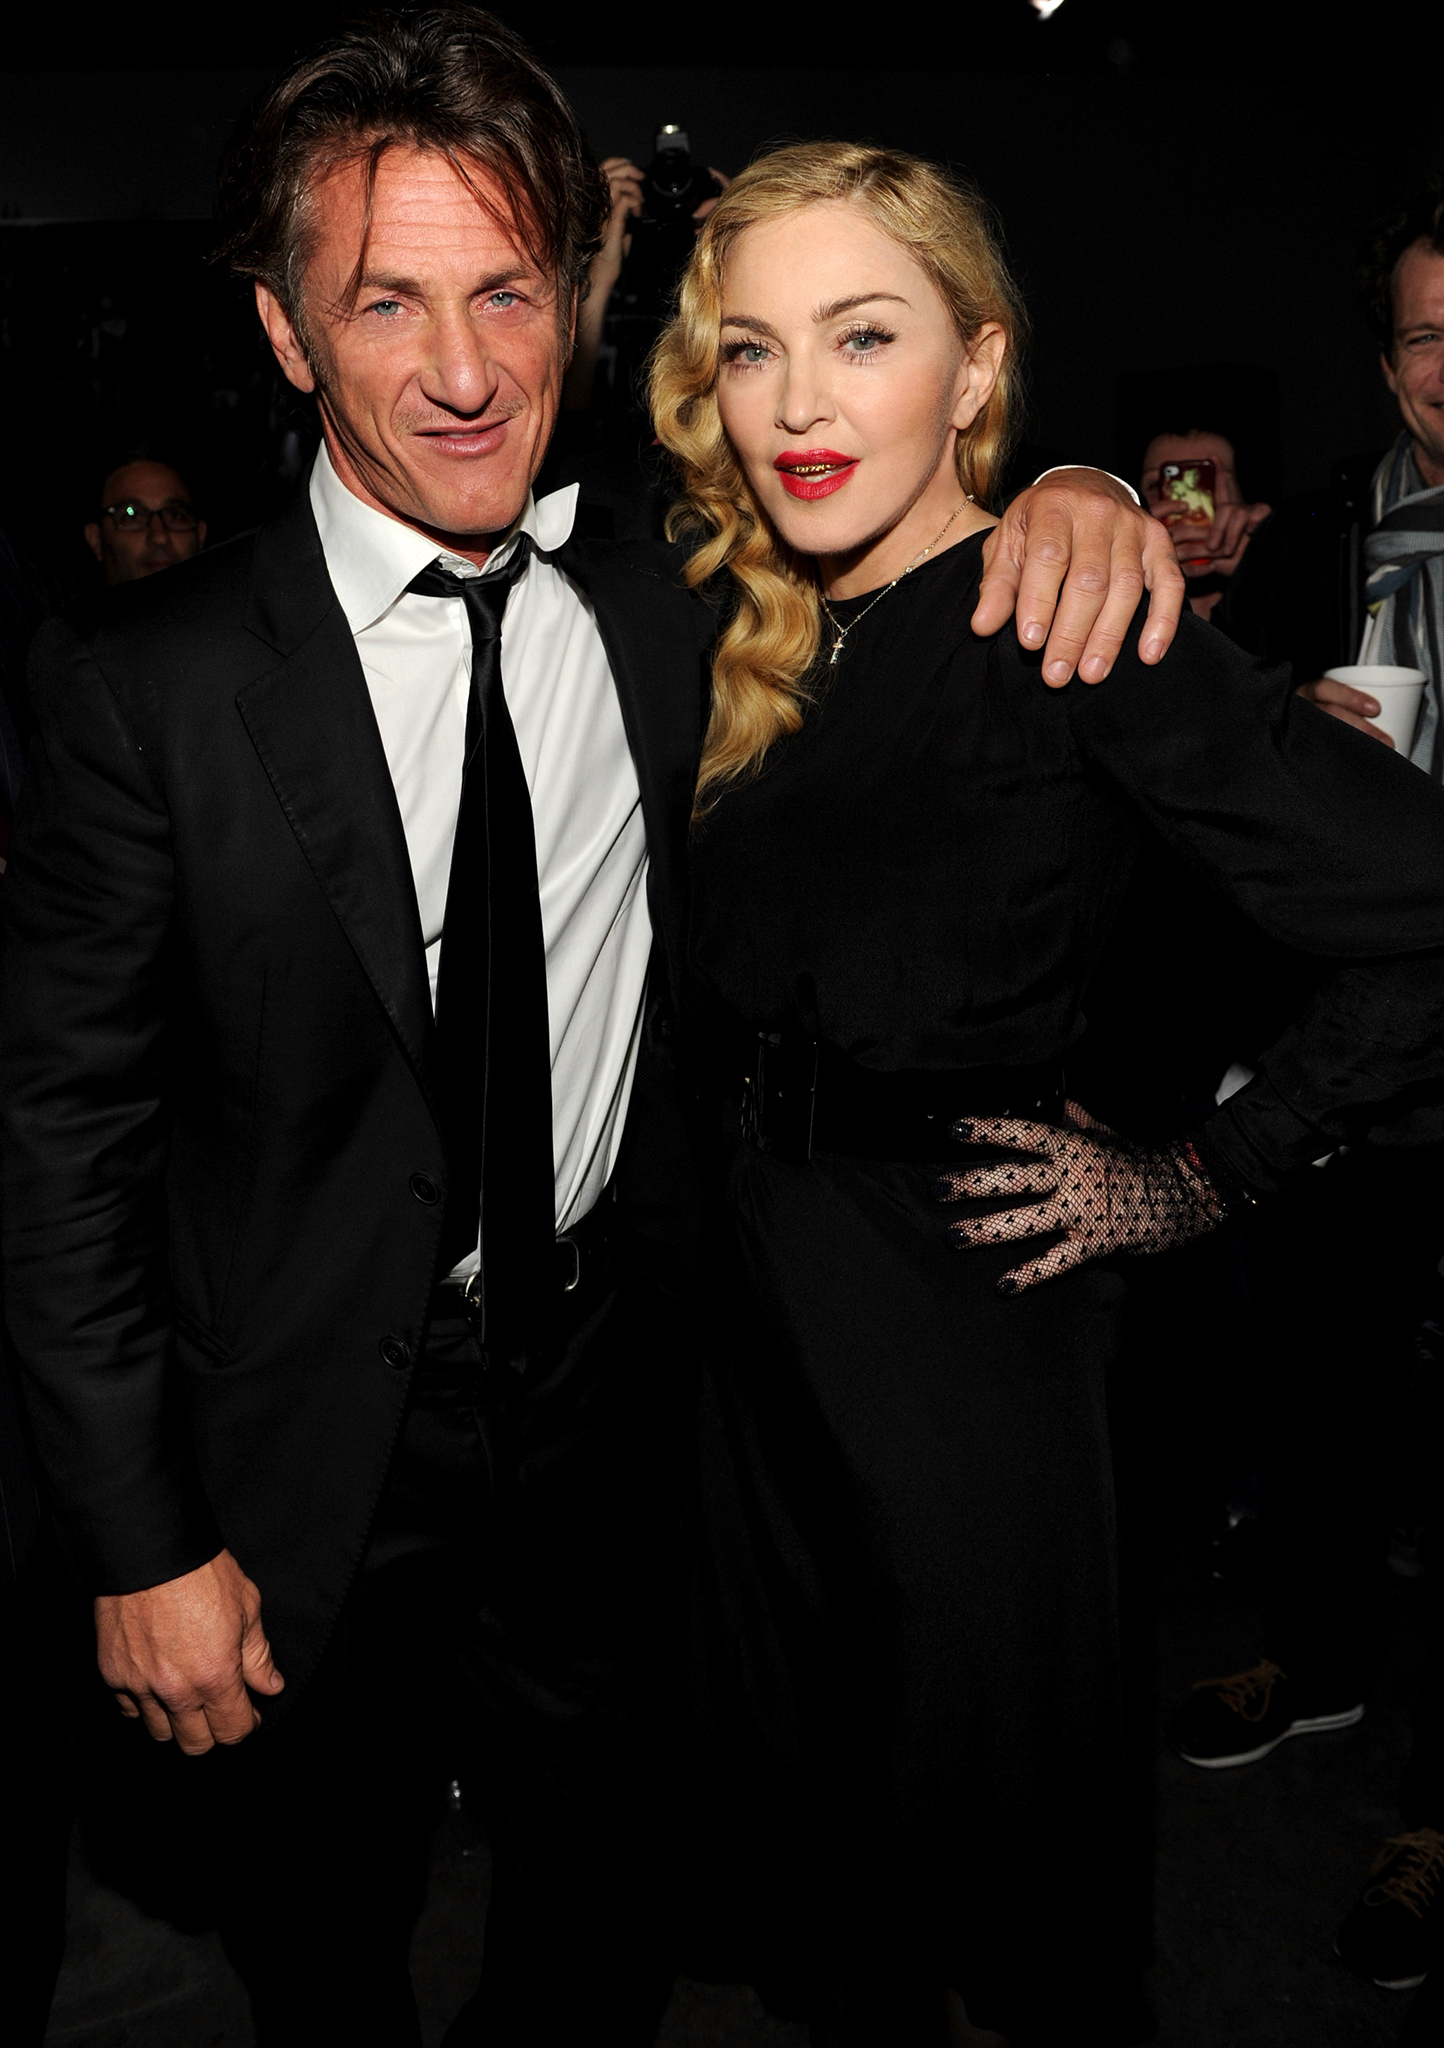 Madonna and ex-husband Sean Penn (Getty Images)